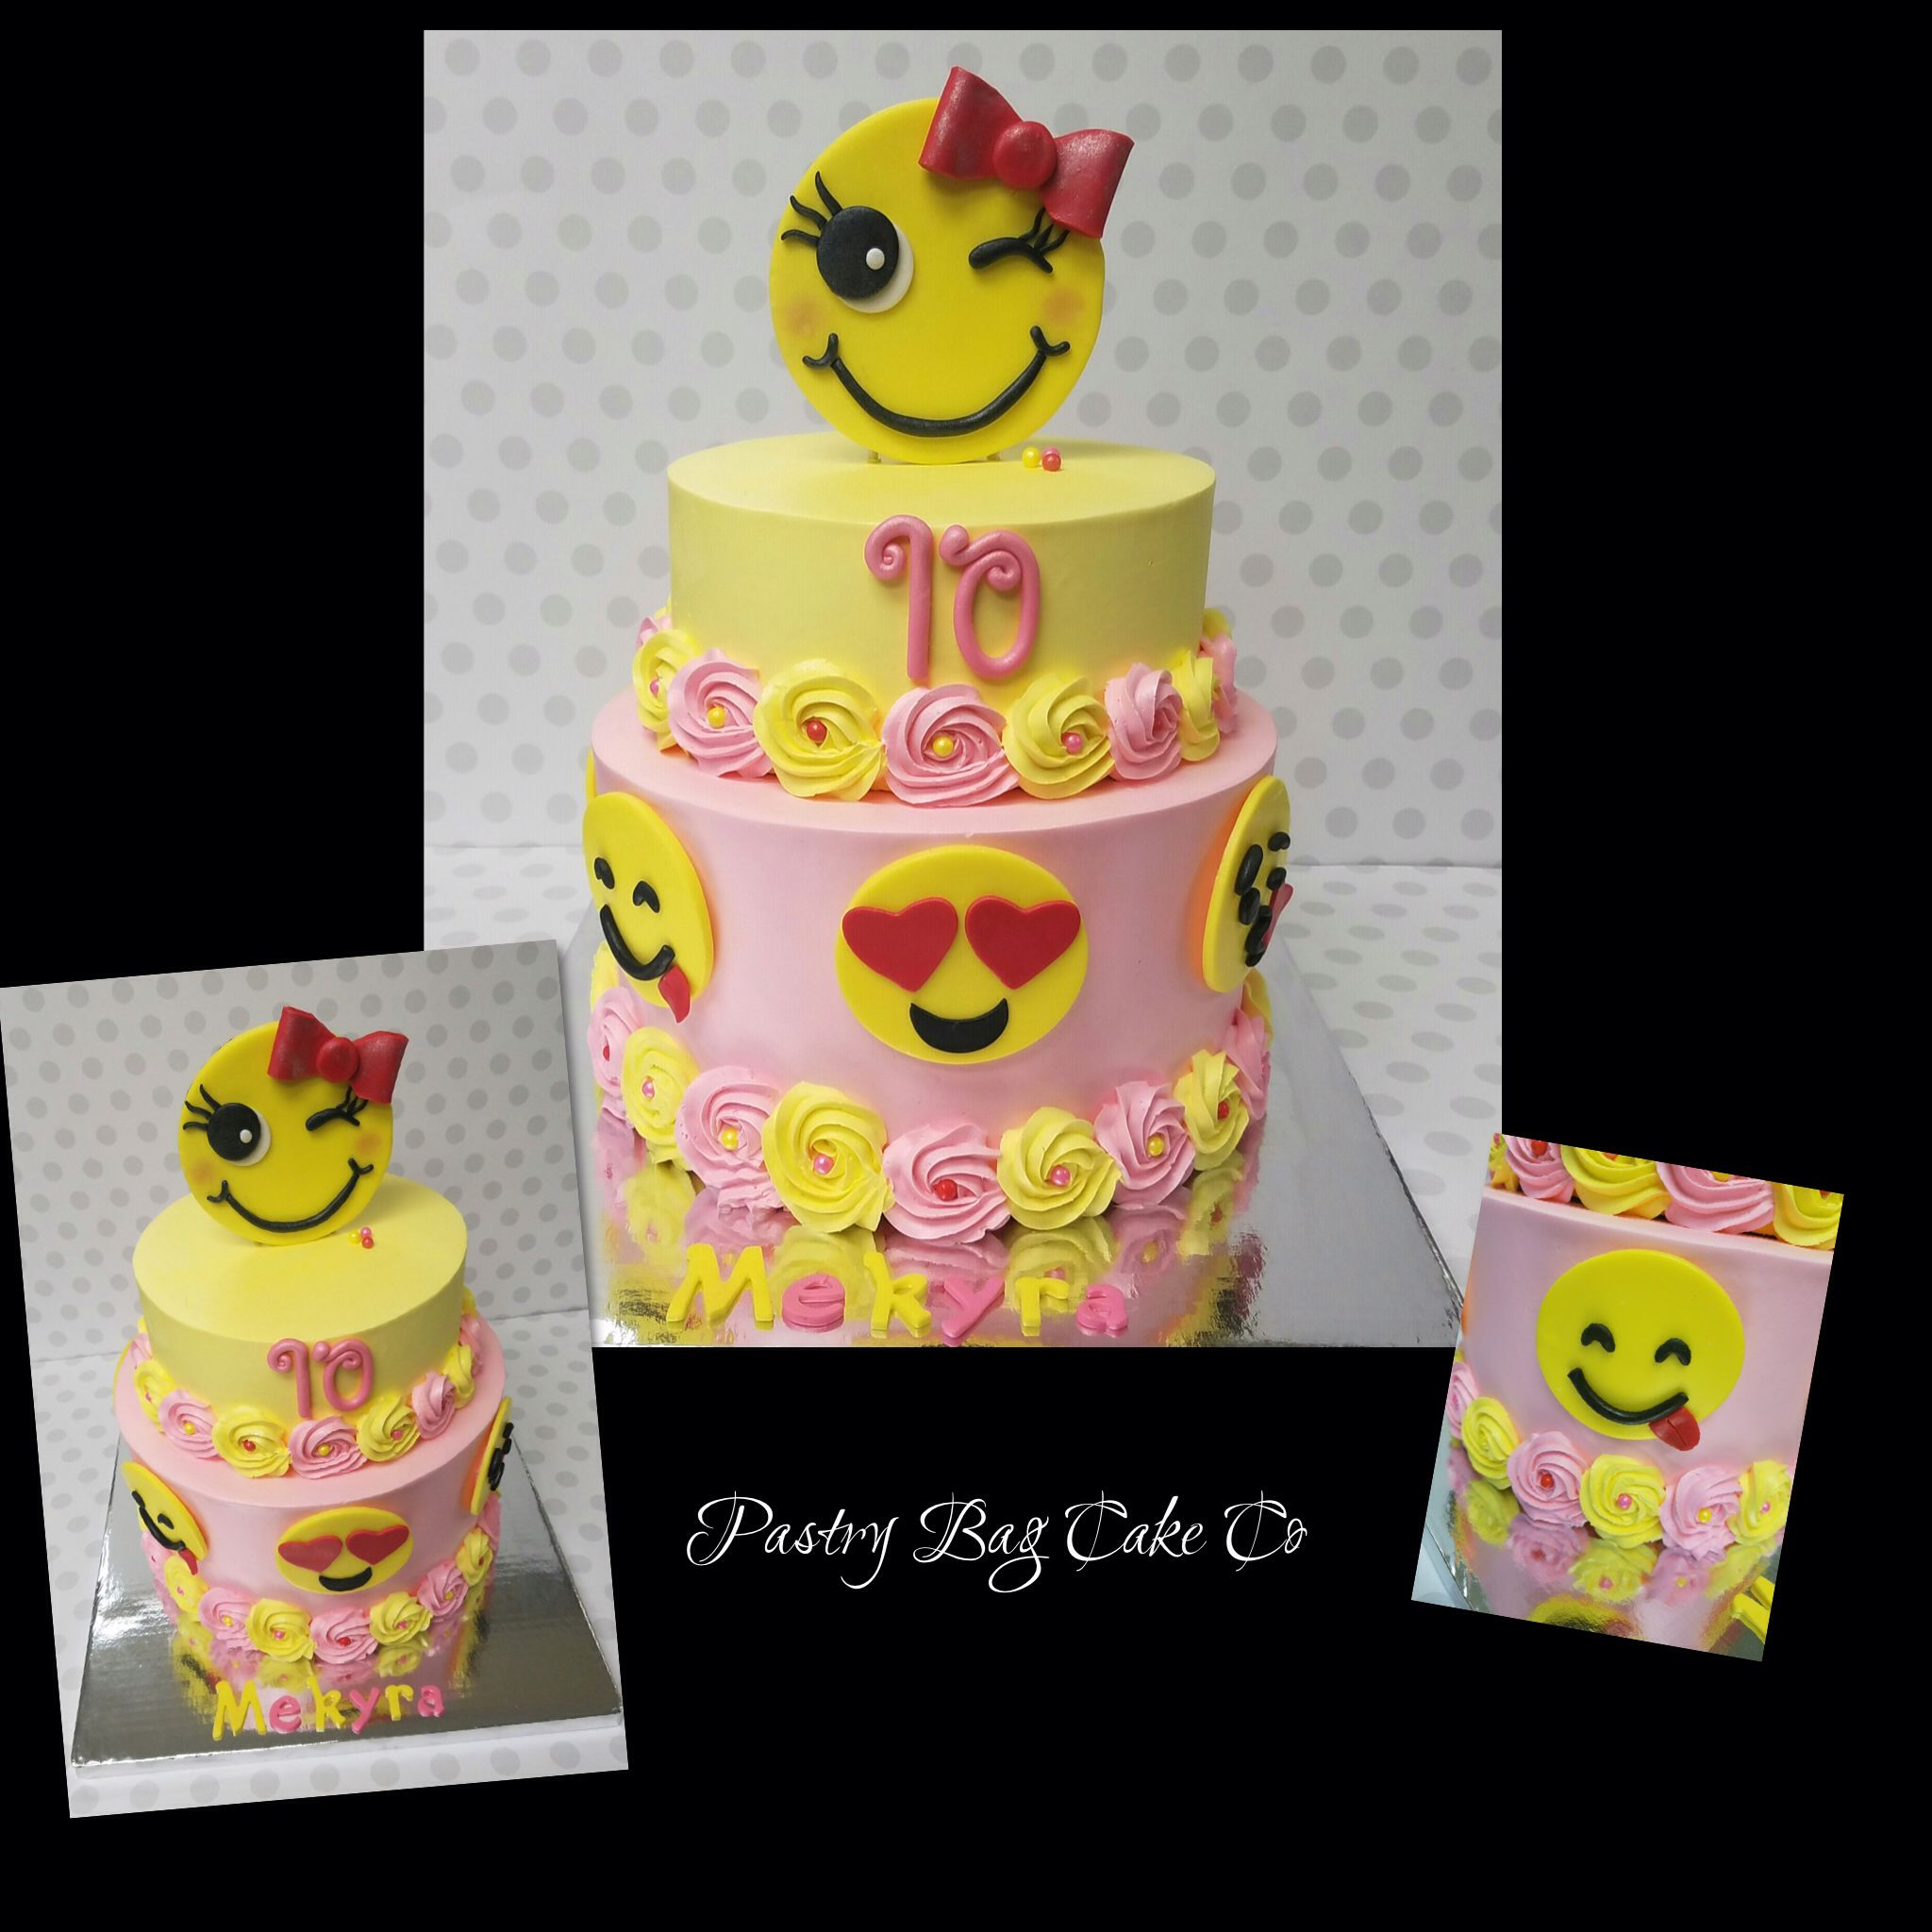 Emoji Cake Buttercream Cake With Pink And Yellow Rosettes - 11th birthday cake ideas